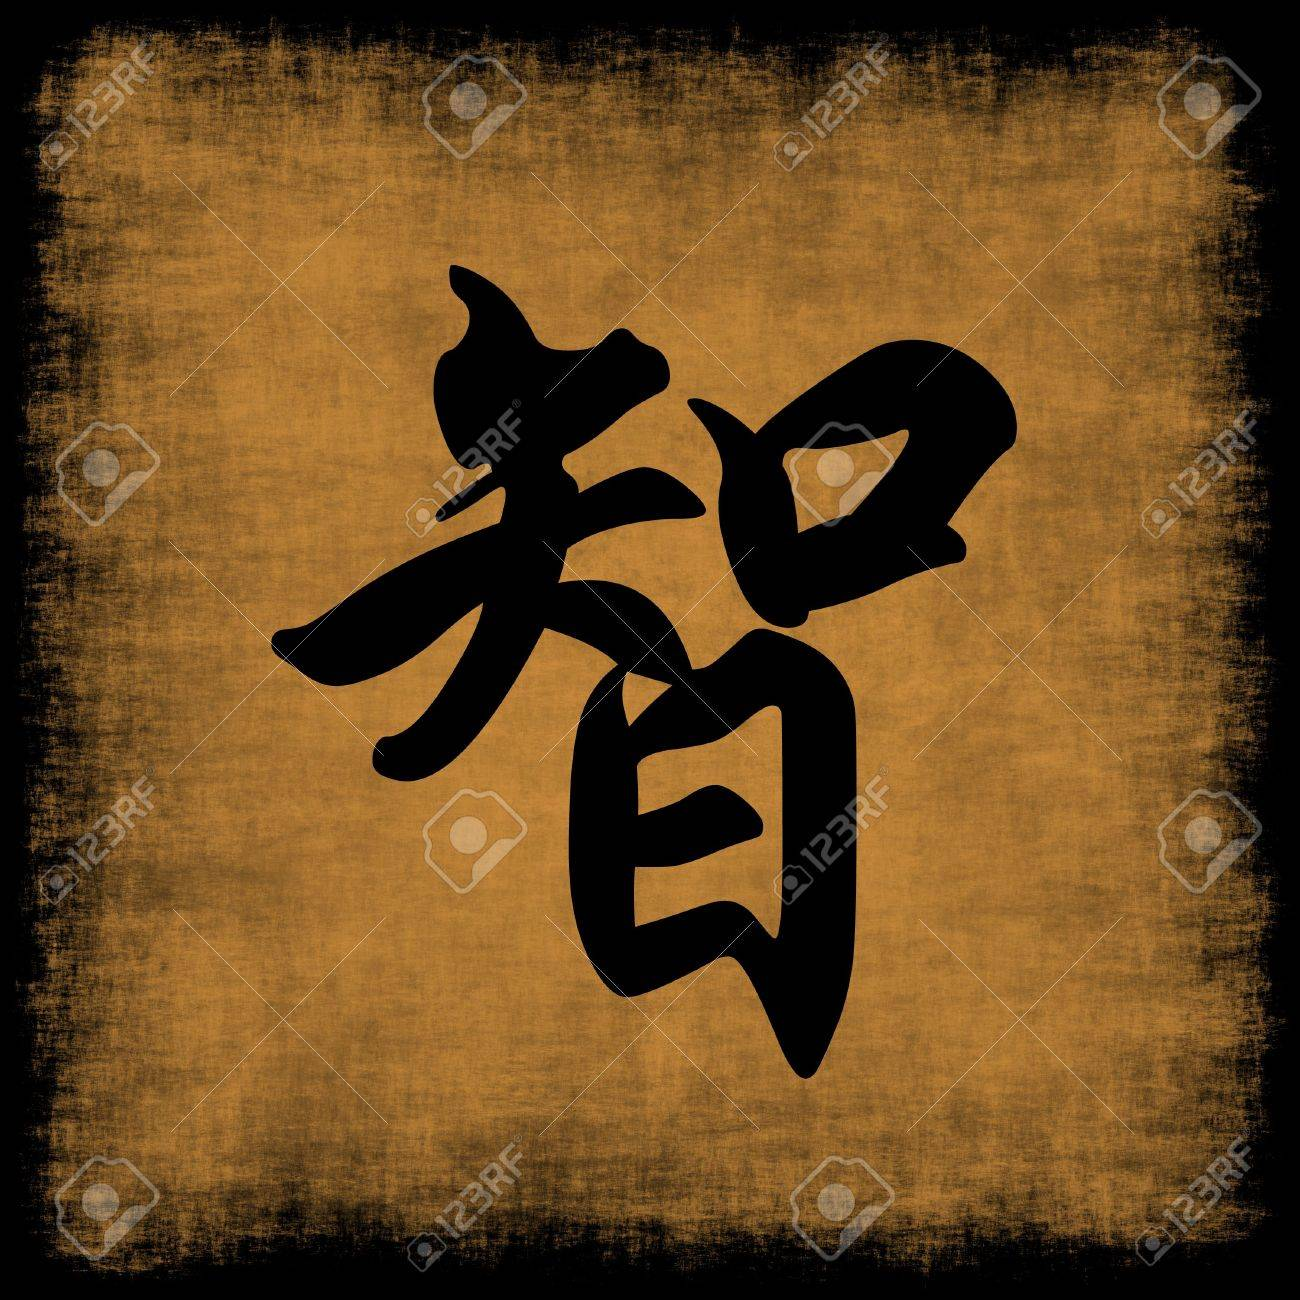 Wisdom chinese calligraphy symbol grunge background set stock wisdom chinese calligraphy symbol grunge background set stock photo 4657747 buycottarizona Image collections